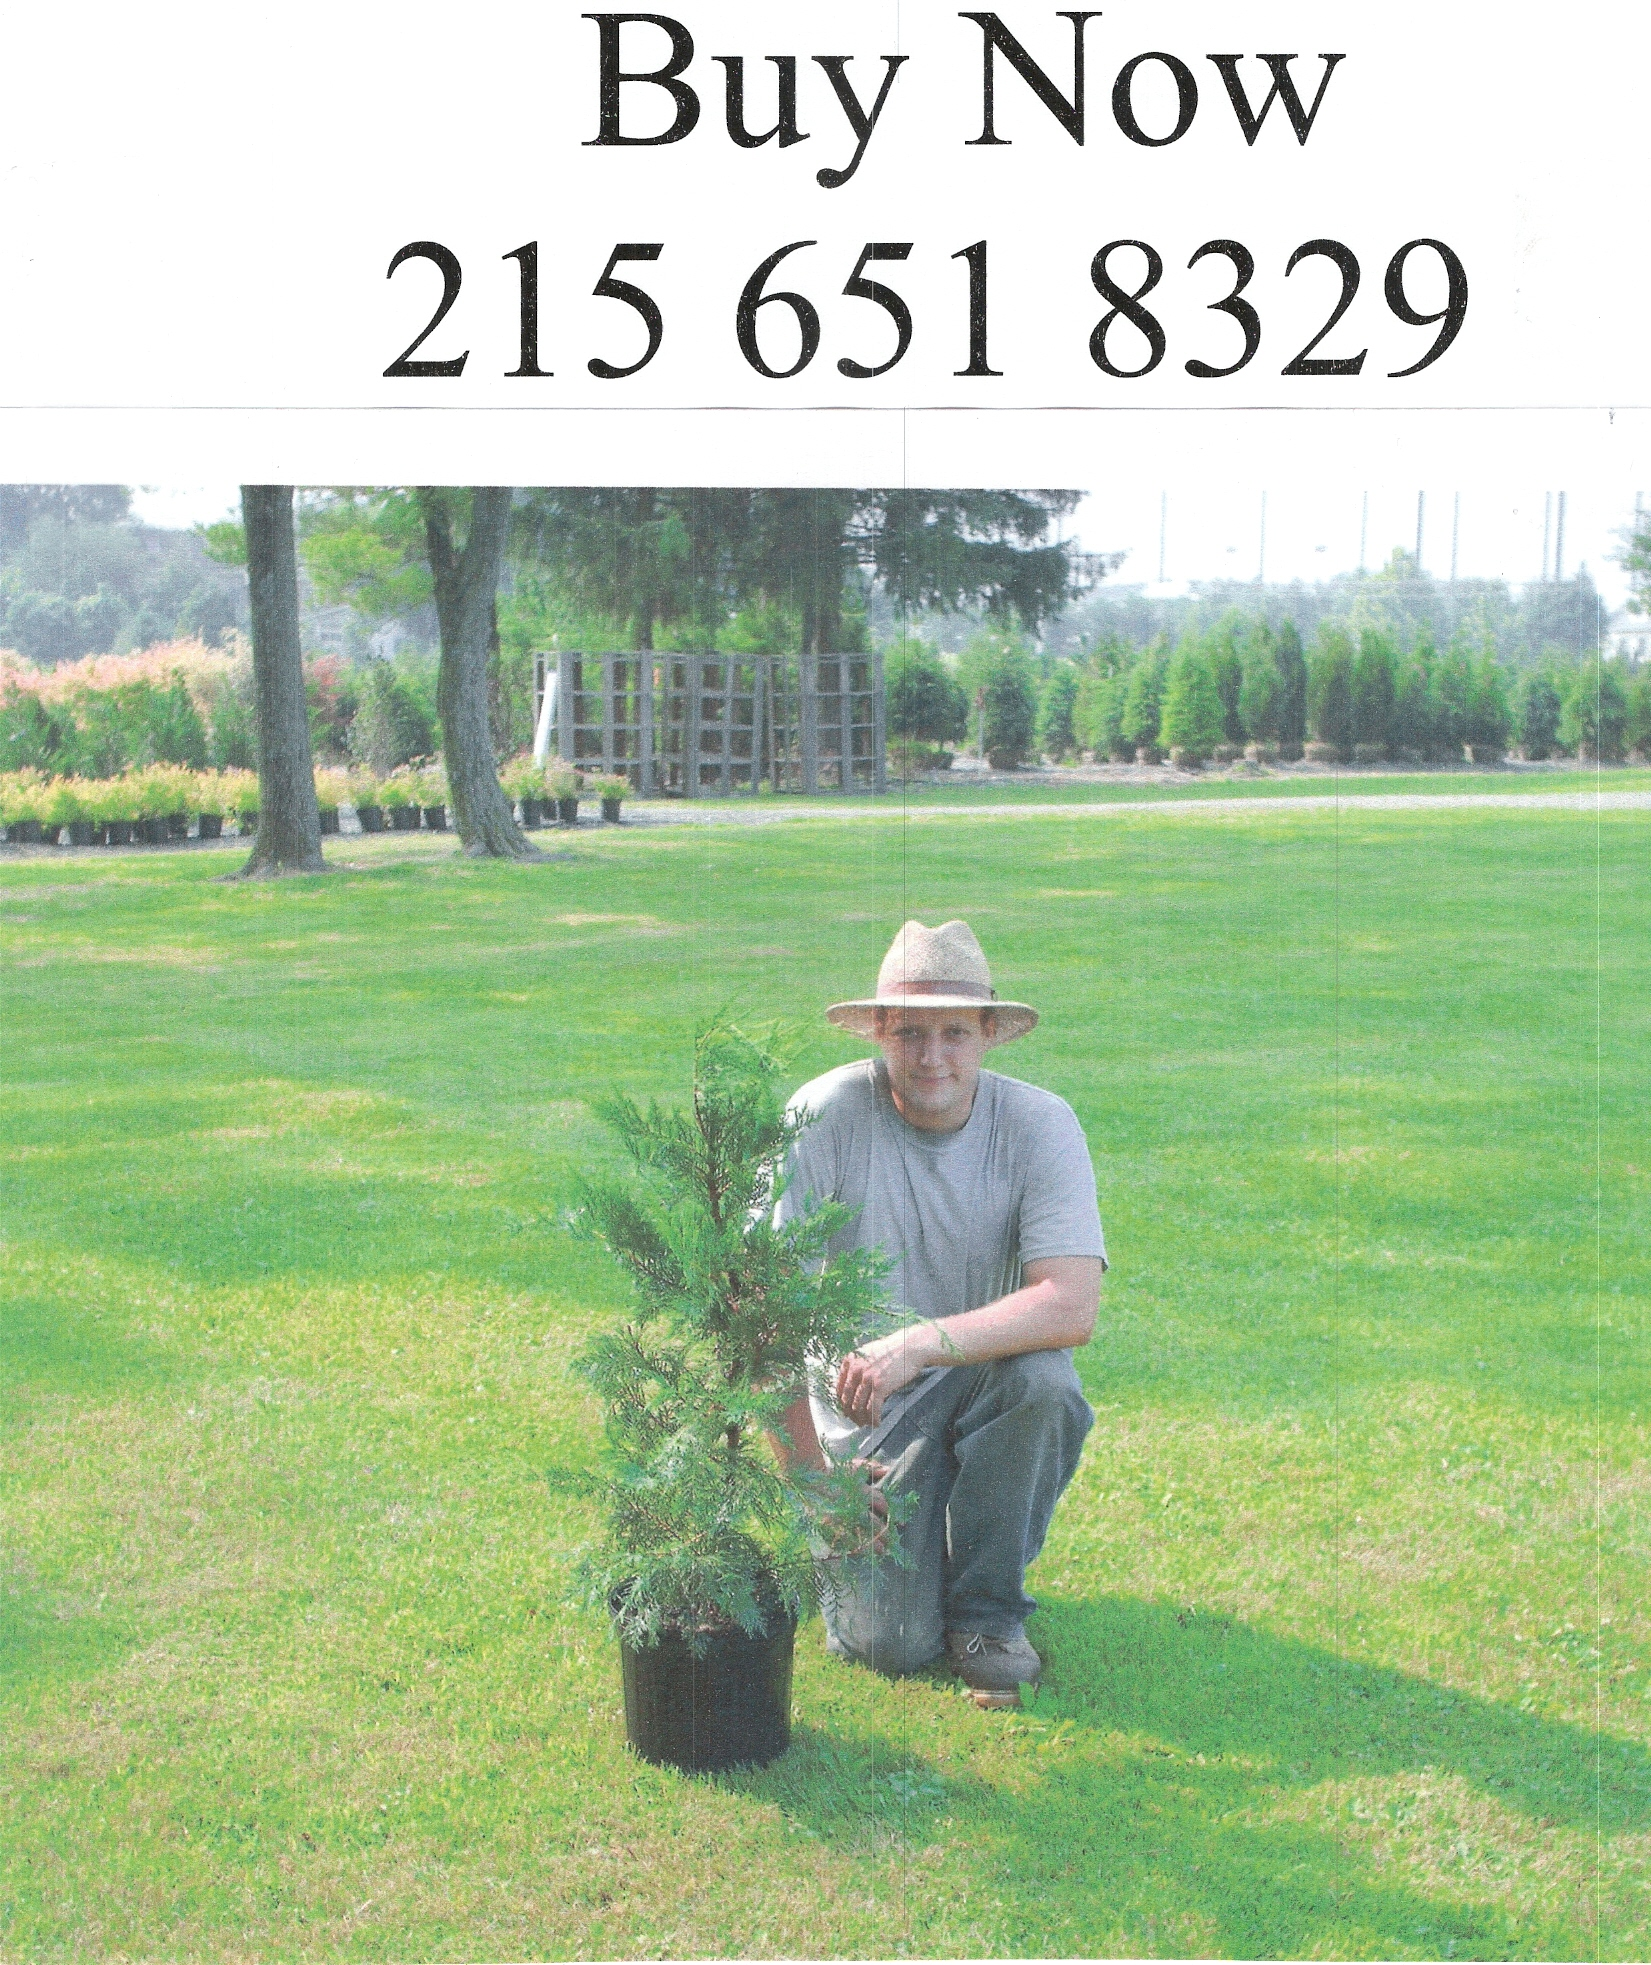 Leyland Cypress 3 ft tall  Buy These NOW!!!!